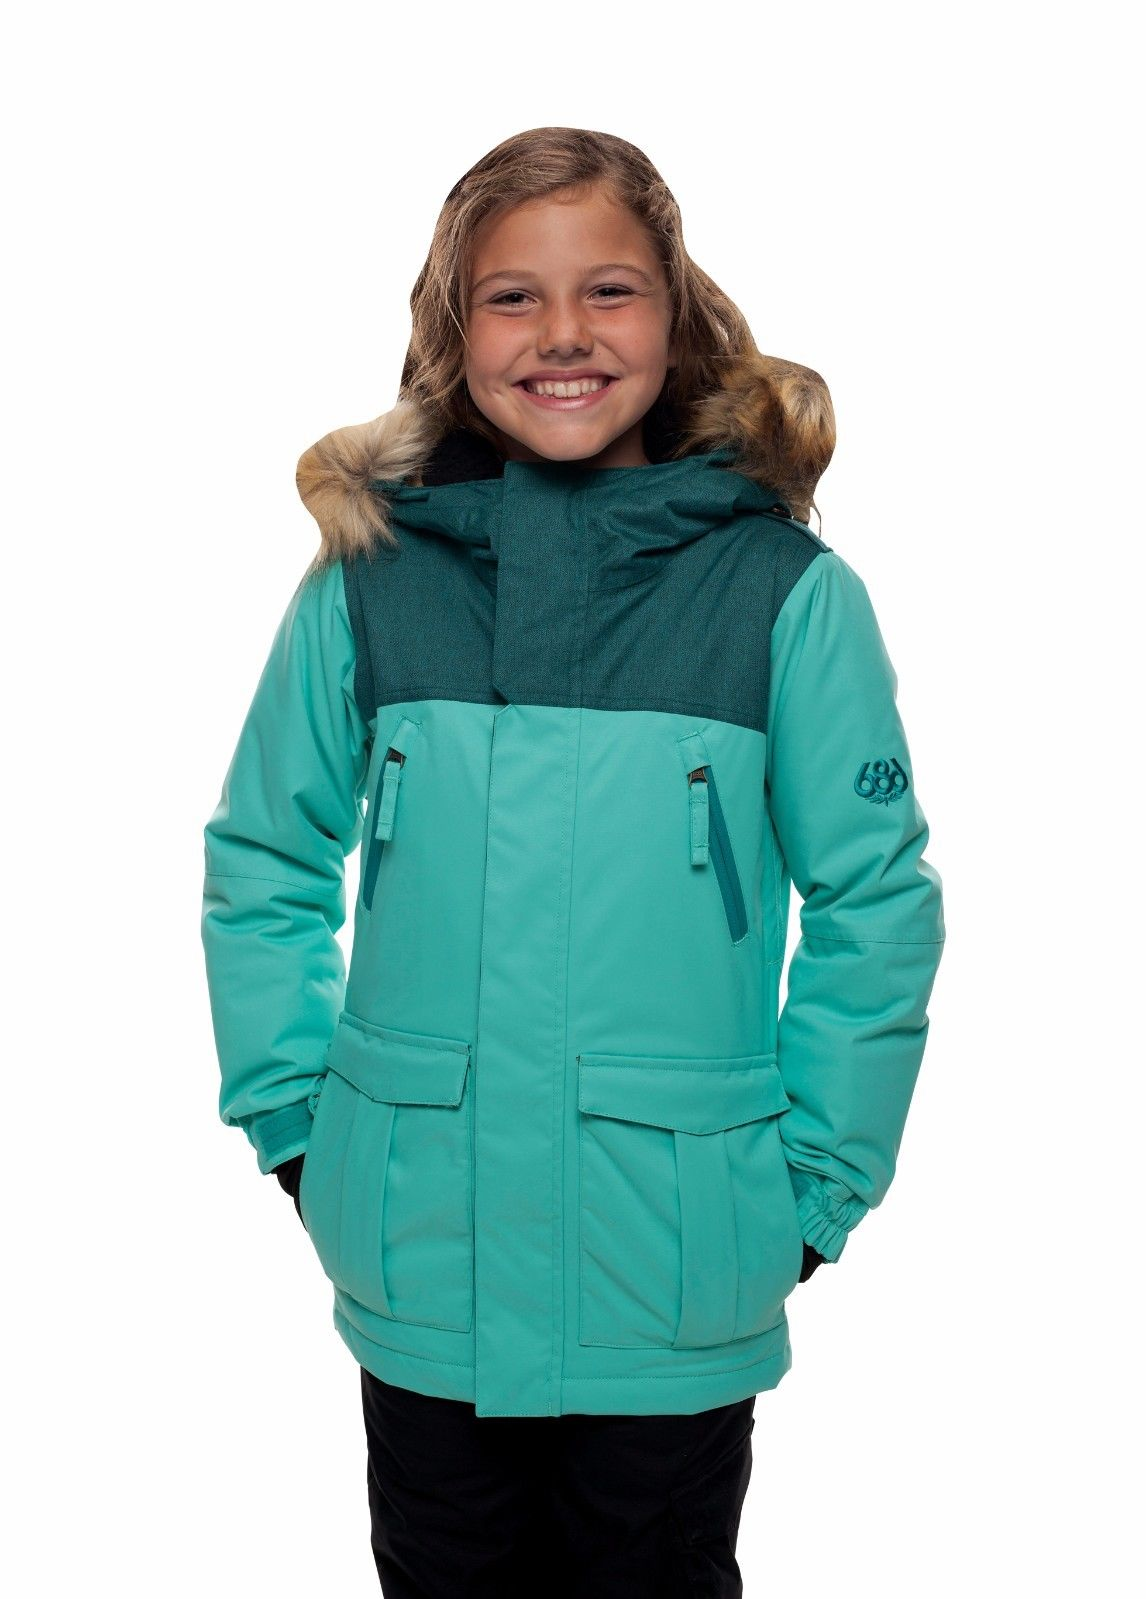 4f85589d559c 686 Harlow Insulated Girls Jacket Aqua Small Age 8 10